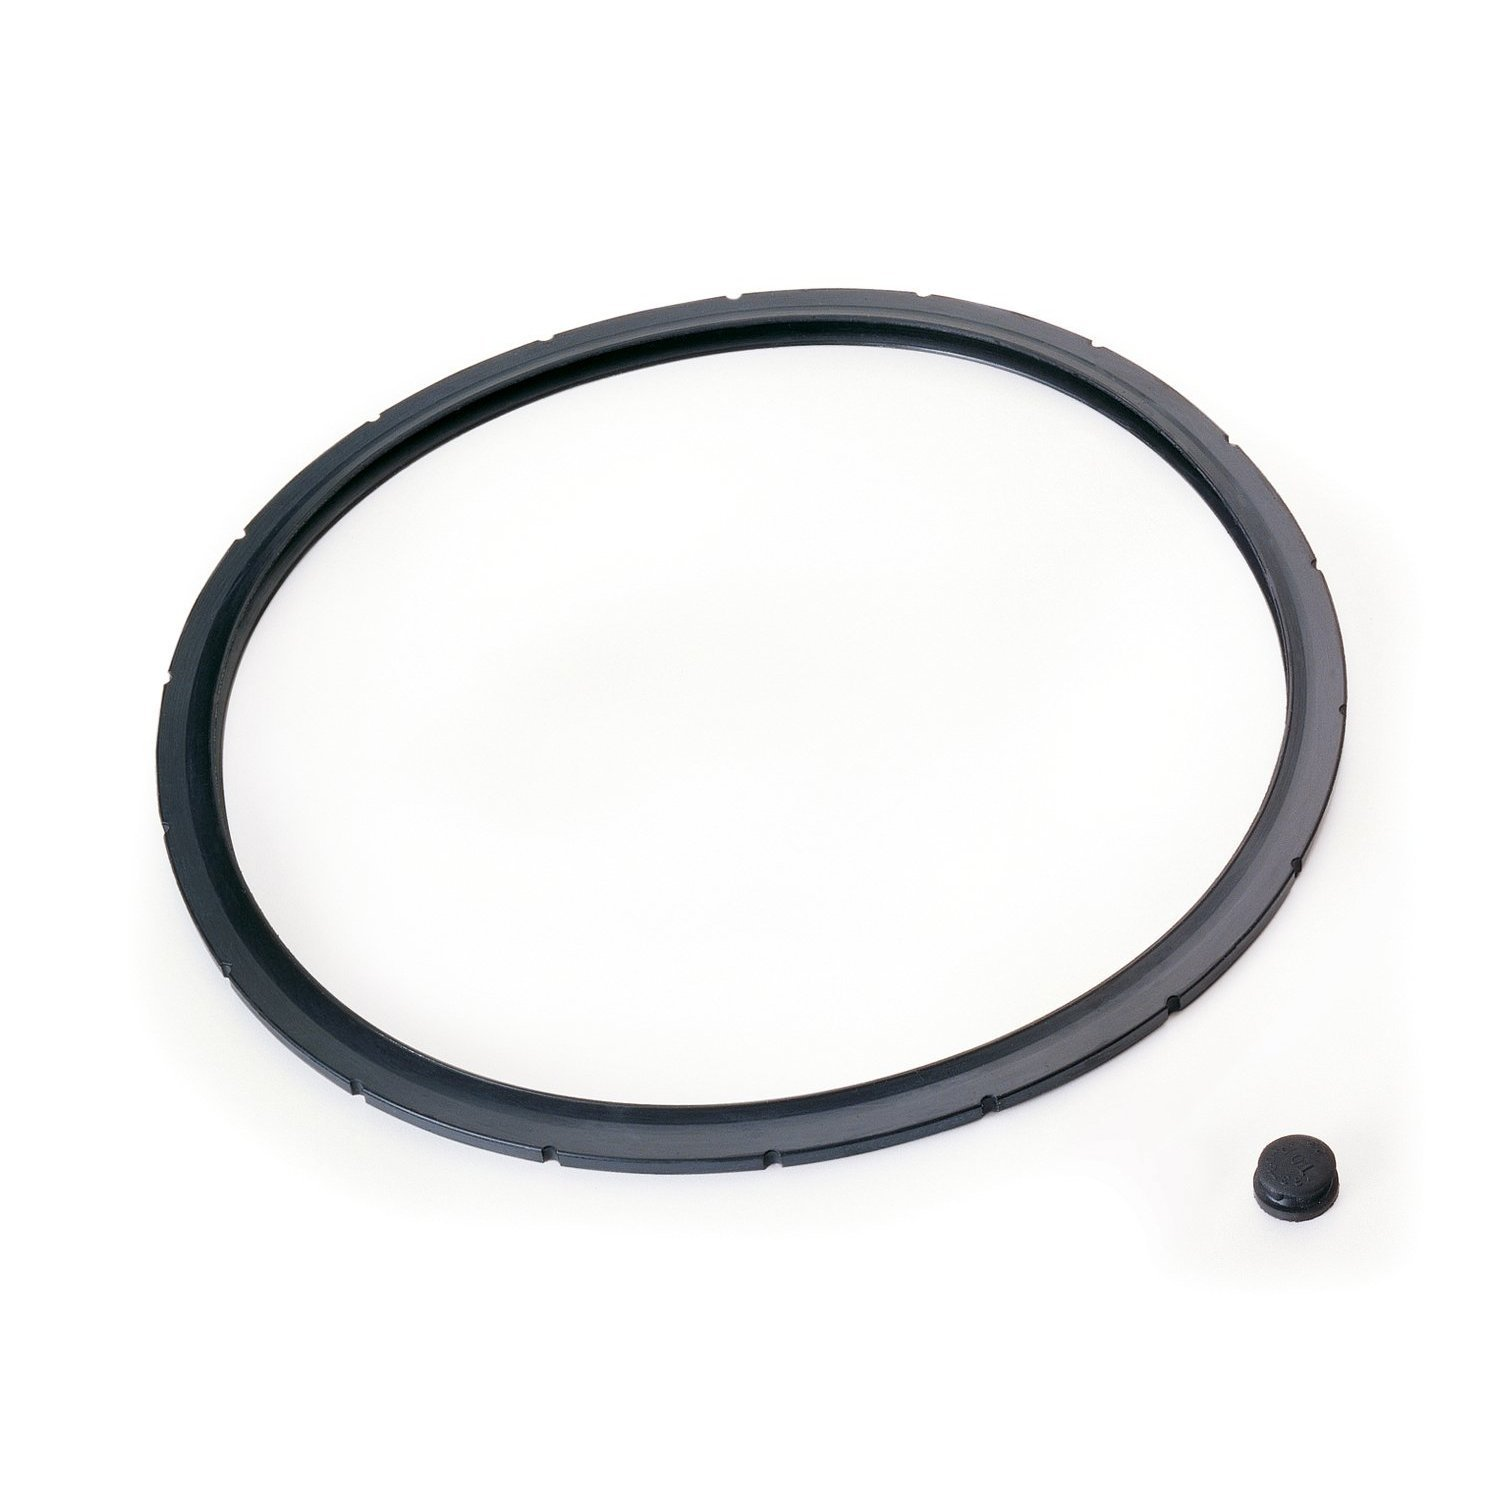 The sealing ring fits around inside rim of cover